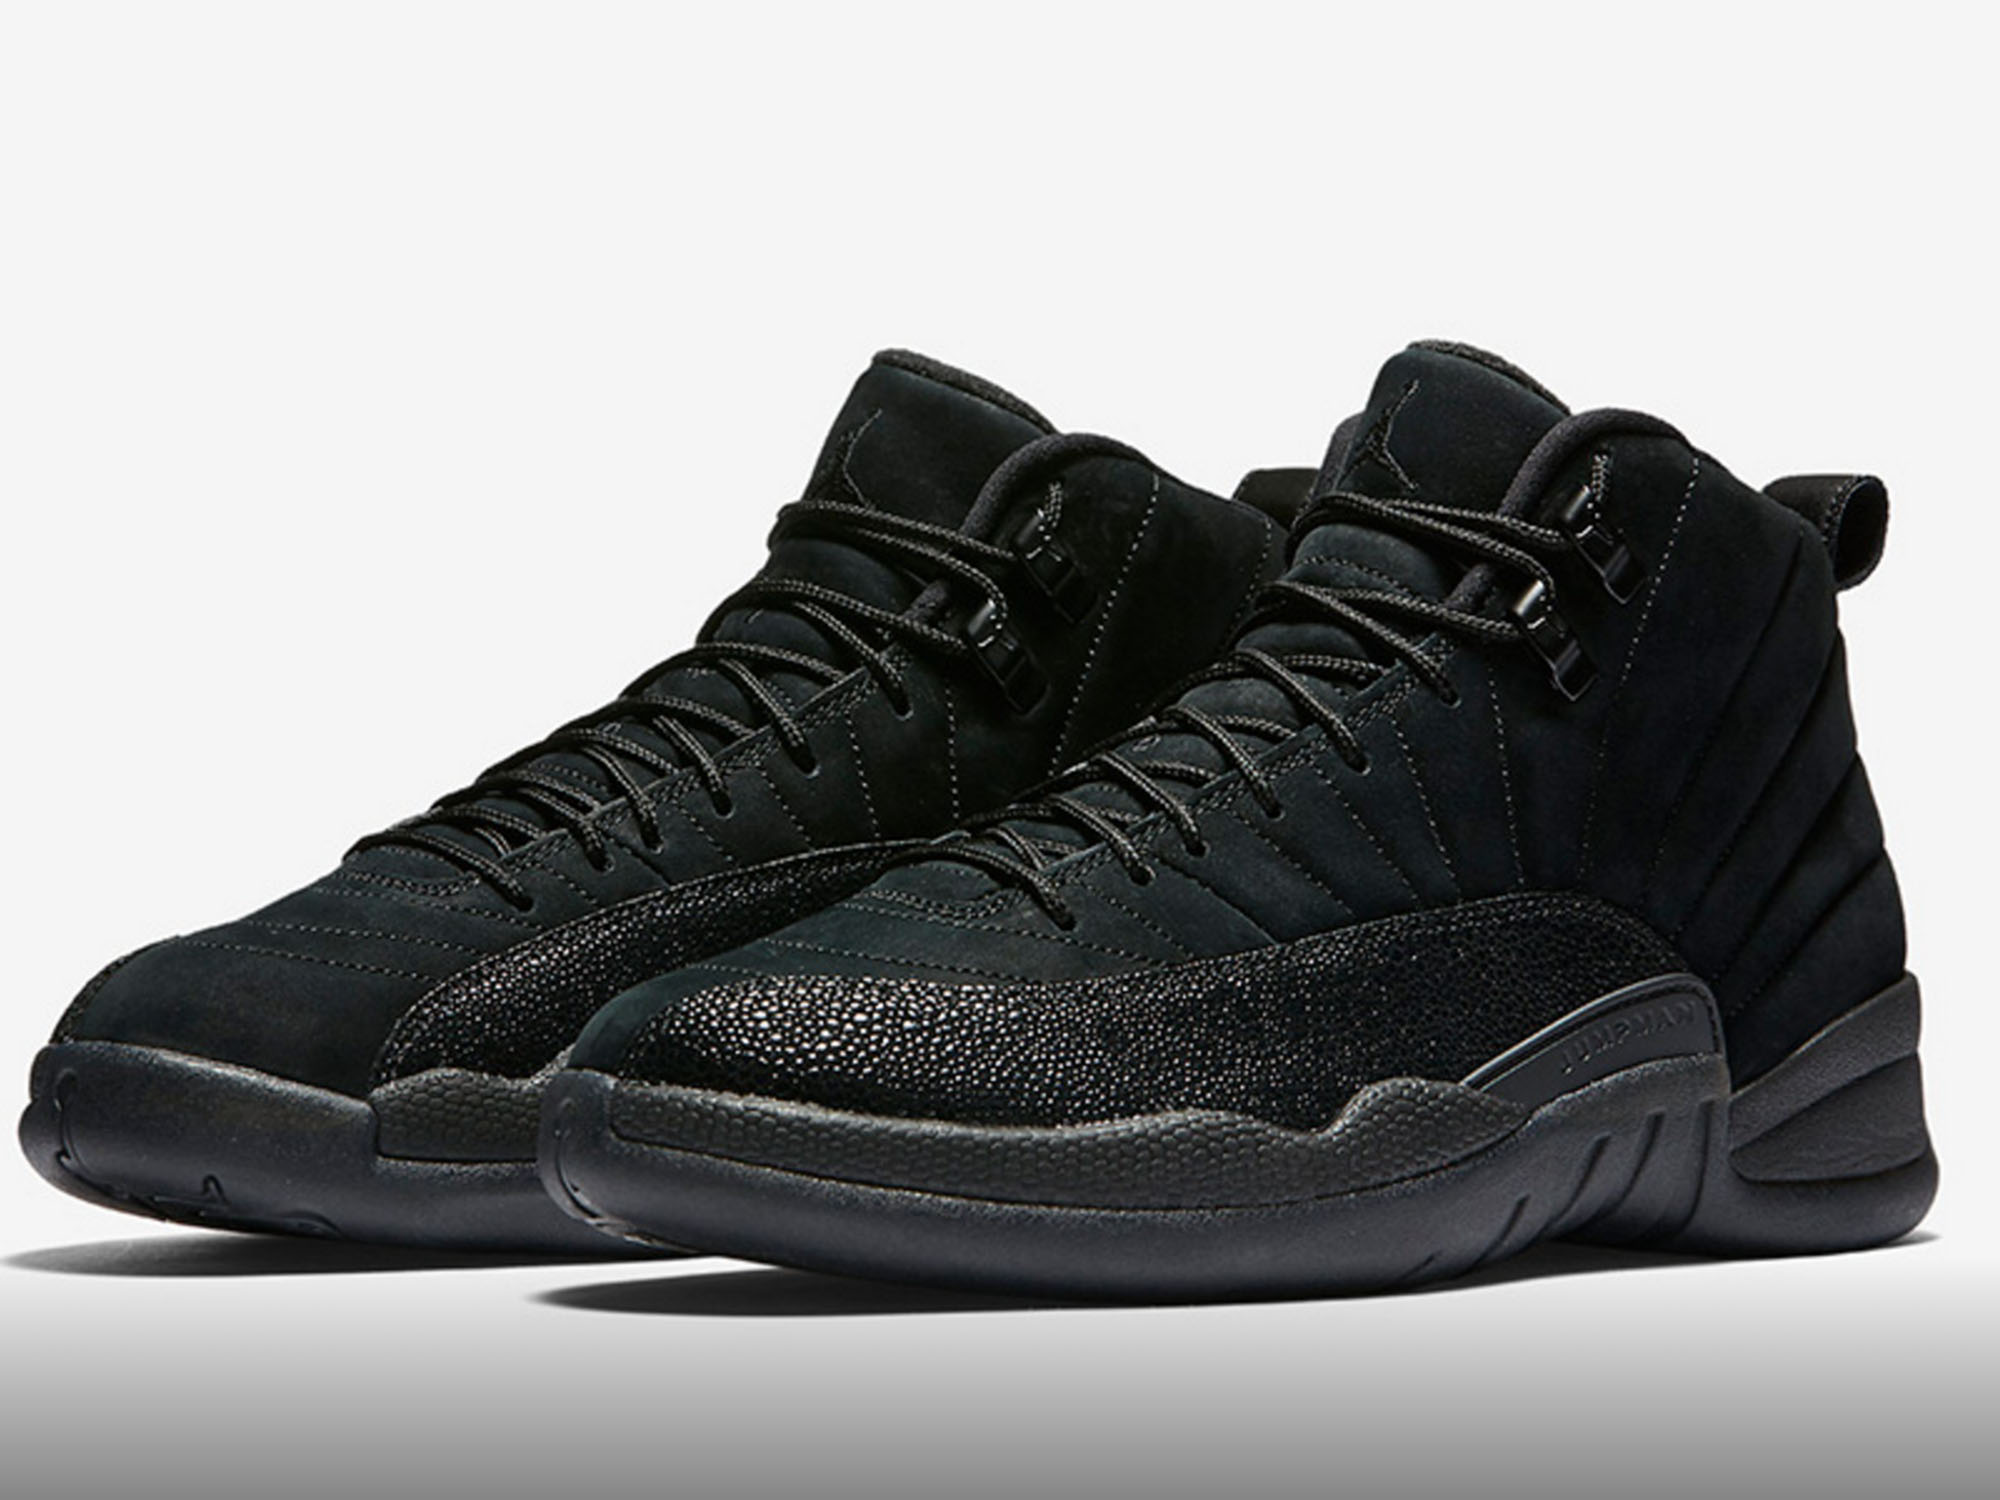 Jordan release dates 2017 full list  Launch days a1671ffa4